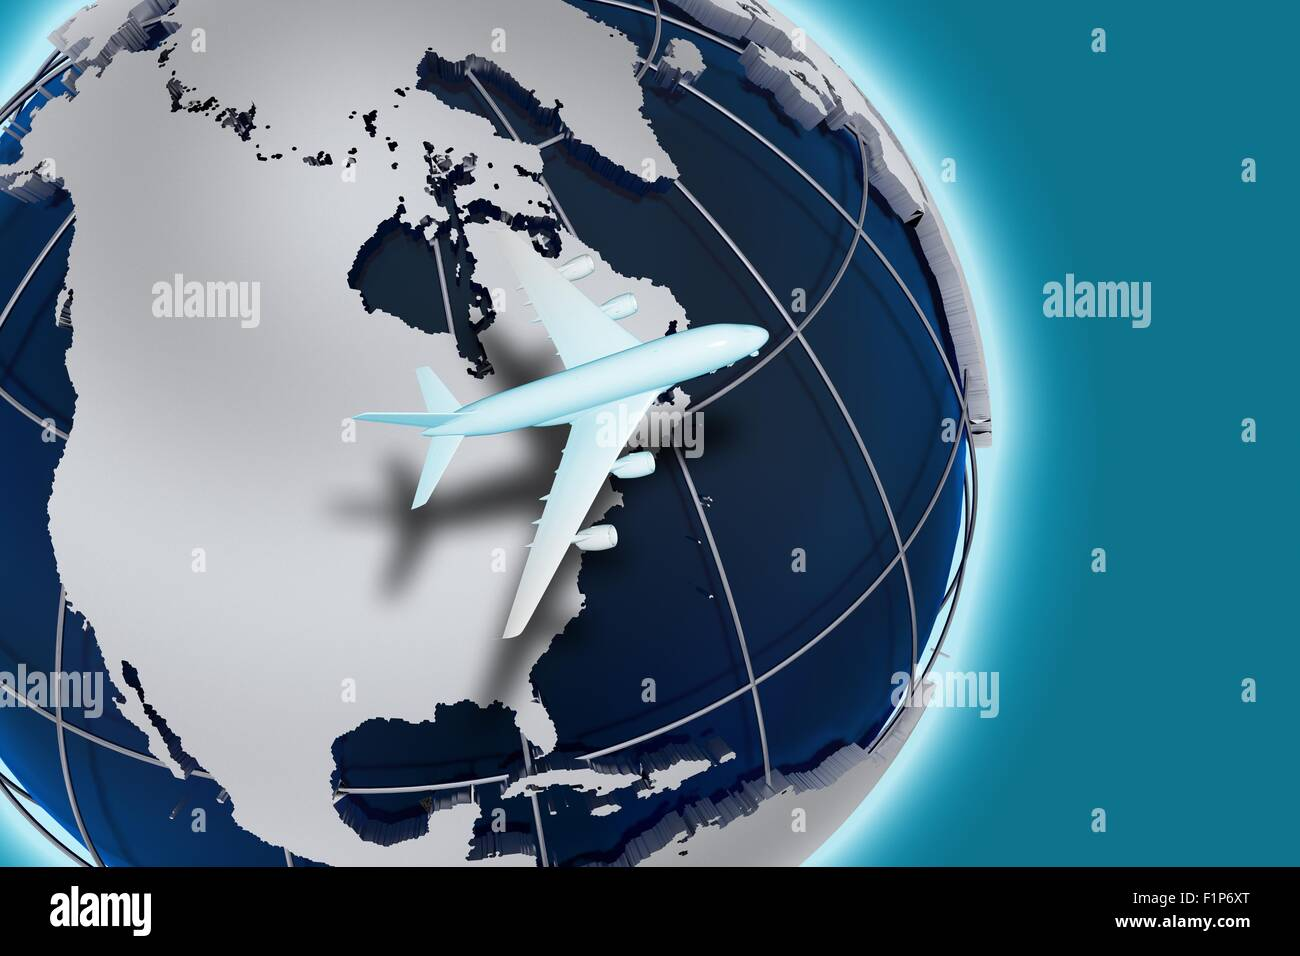 Airlines Air Transport 3D Render Illustration Theme. Worldwide Air Transportation. Globe Illustration and Flying - Stock Image